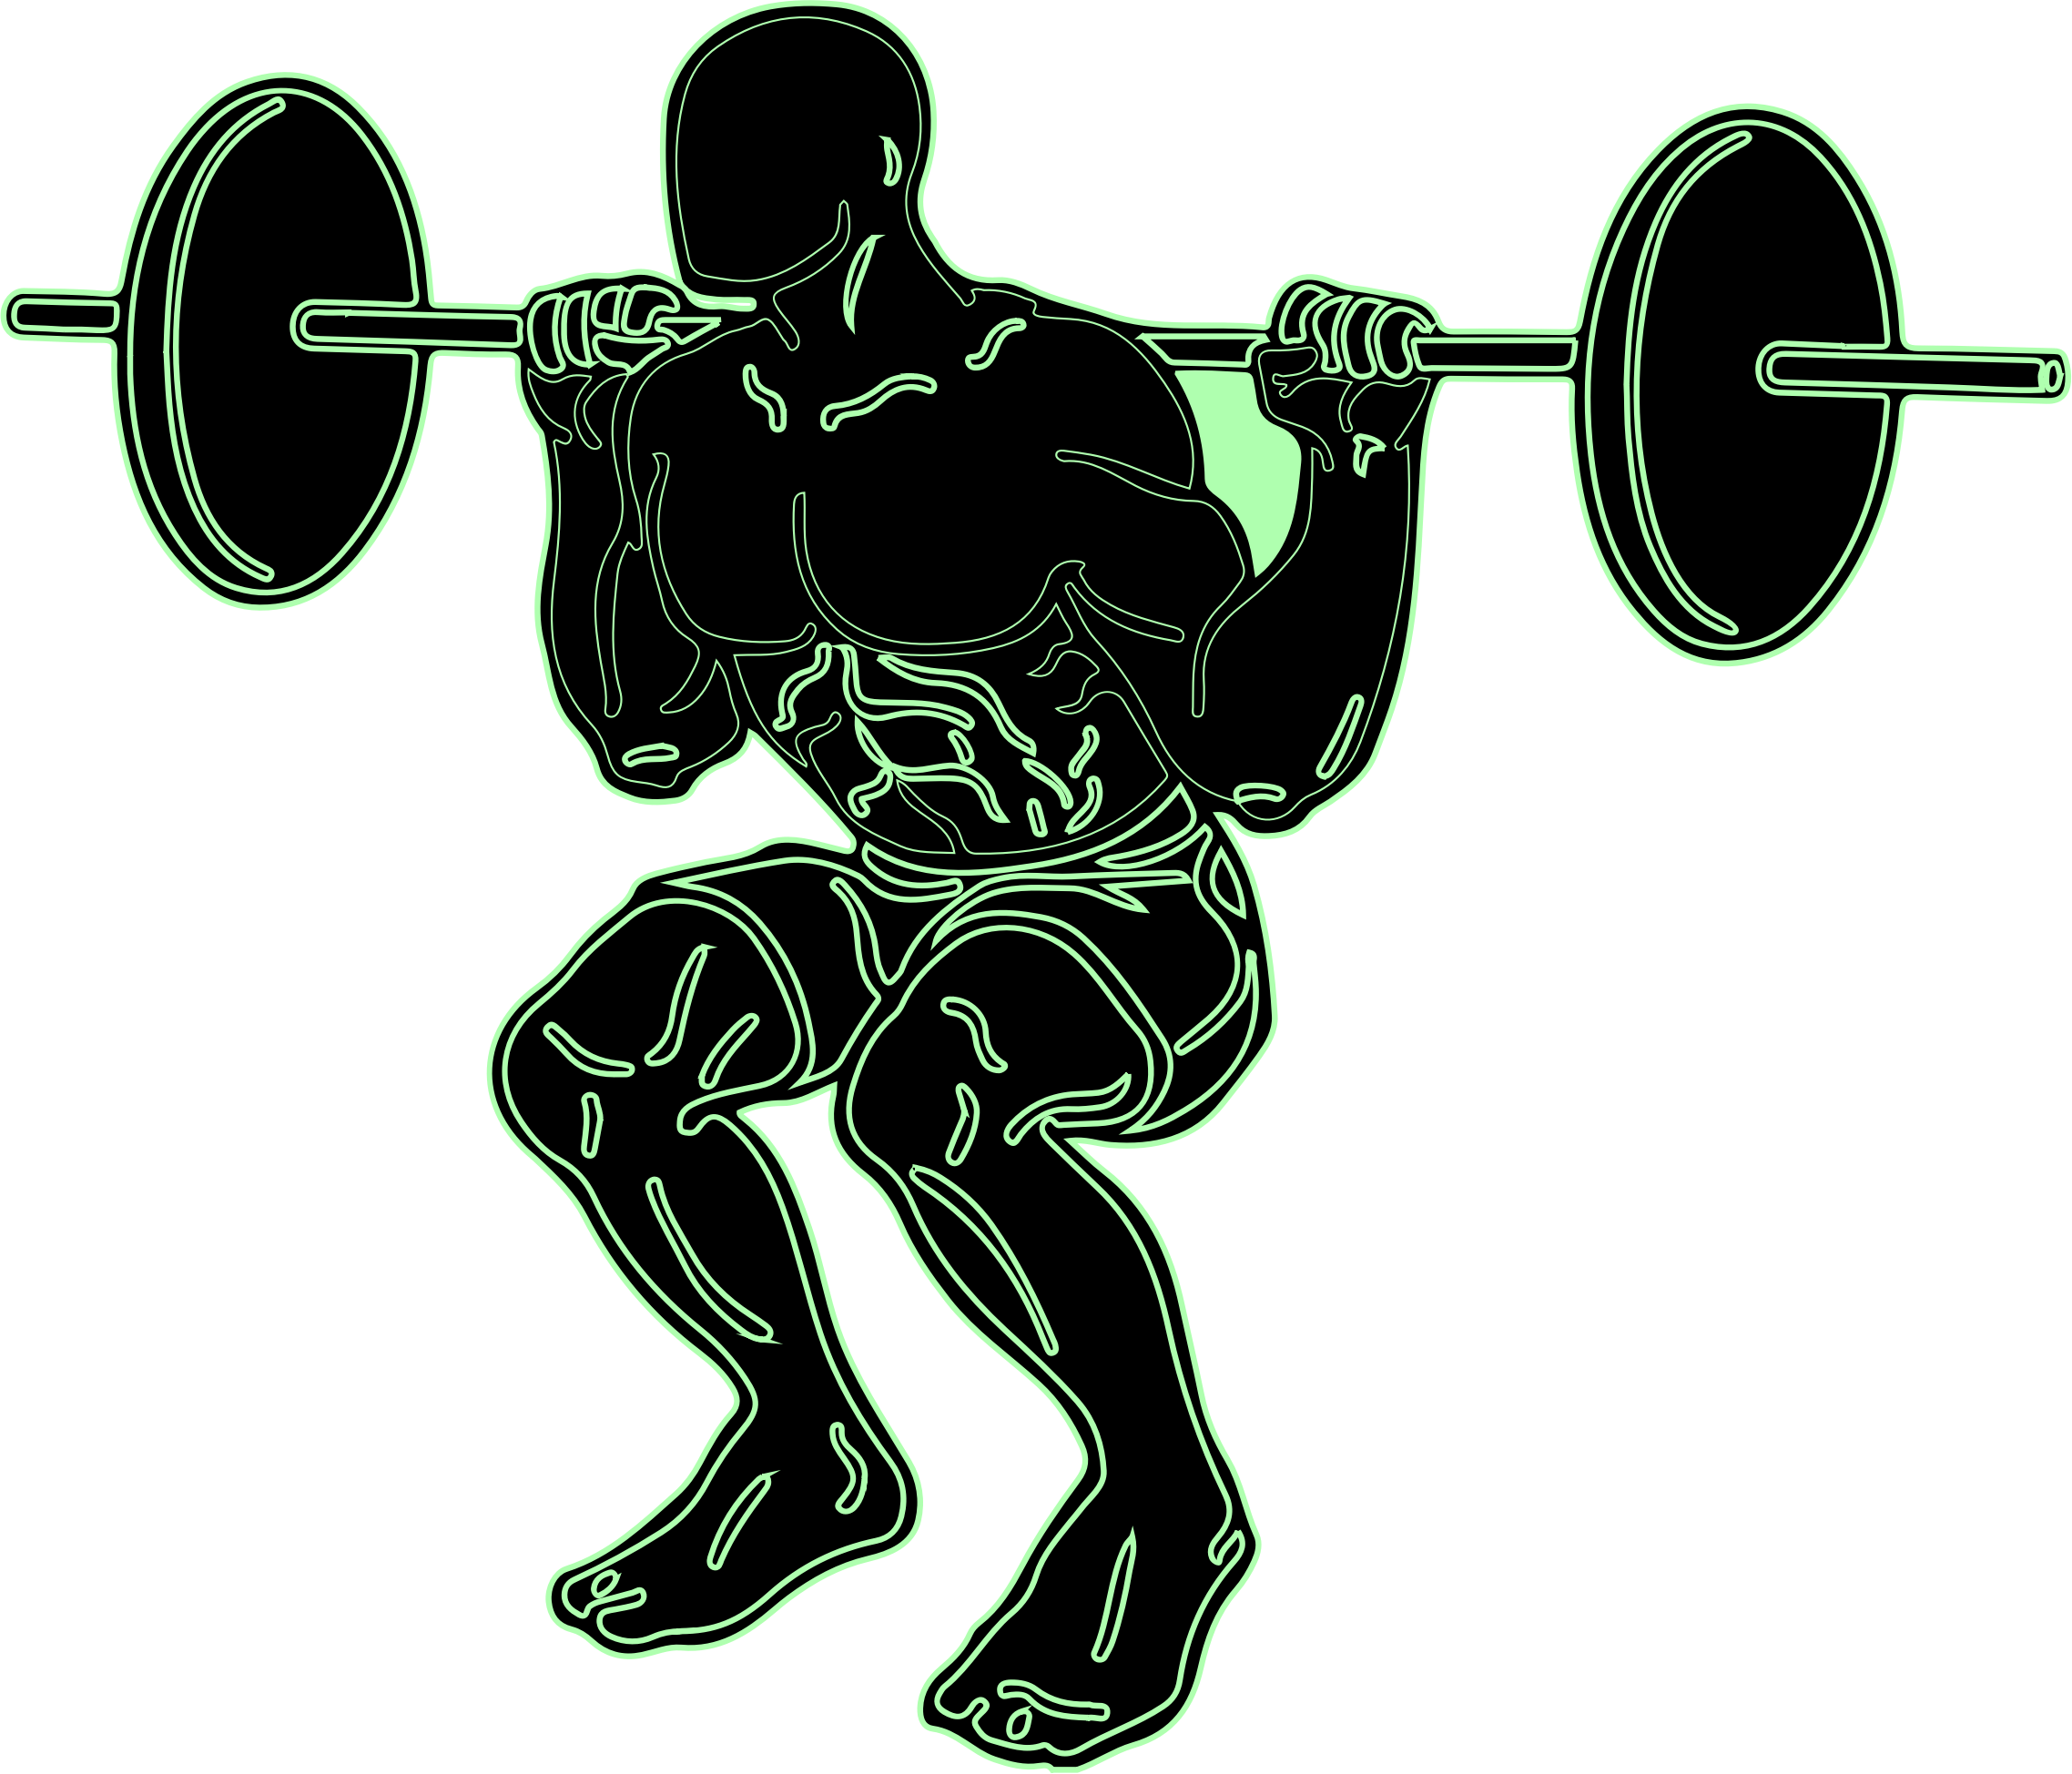 Weight clipart olympic barbell. Weightlifting squat training clip